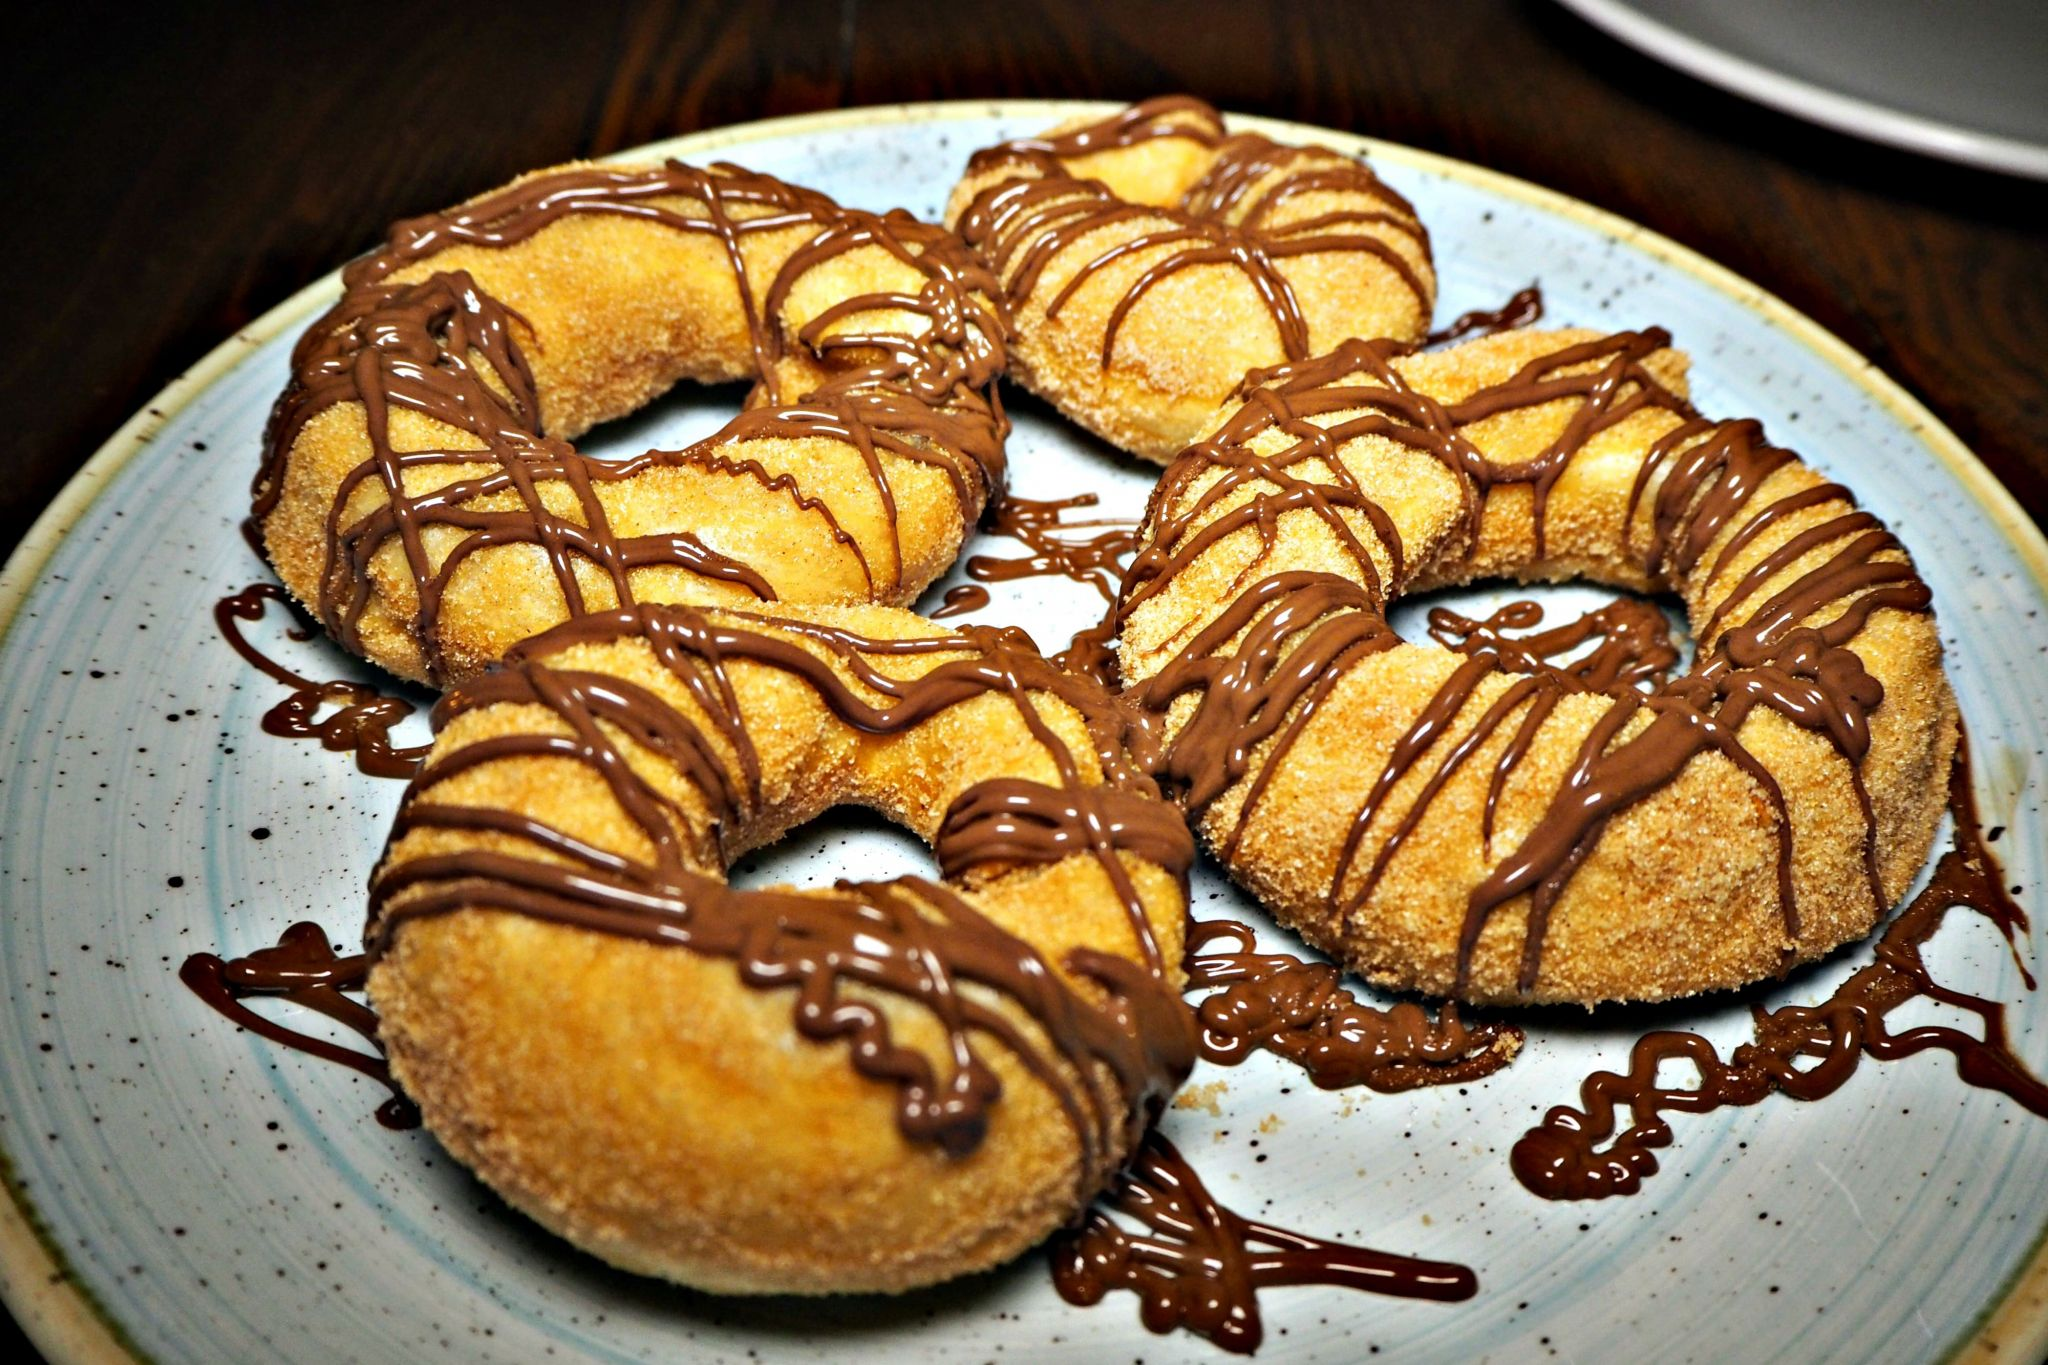 Doughnuts covered in Nutella